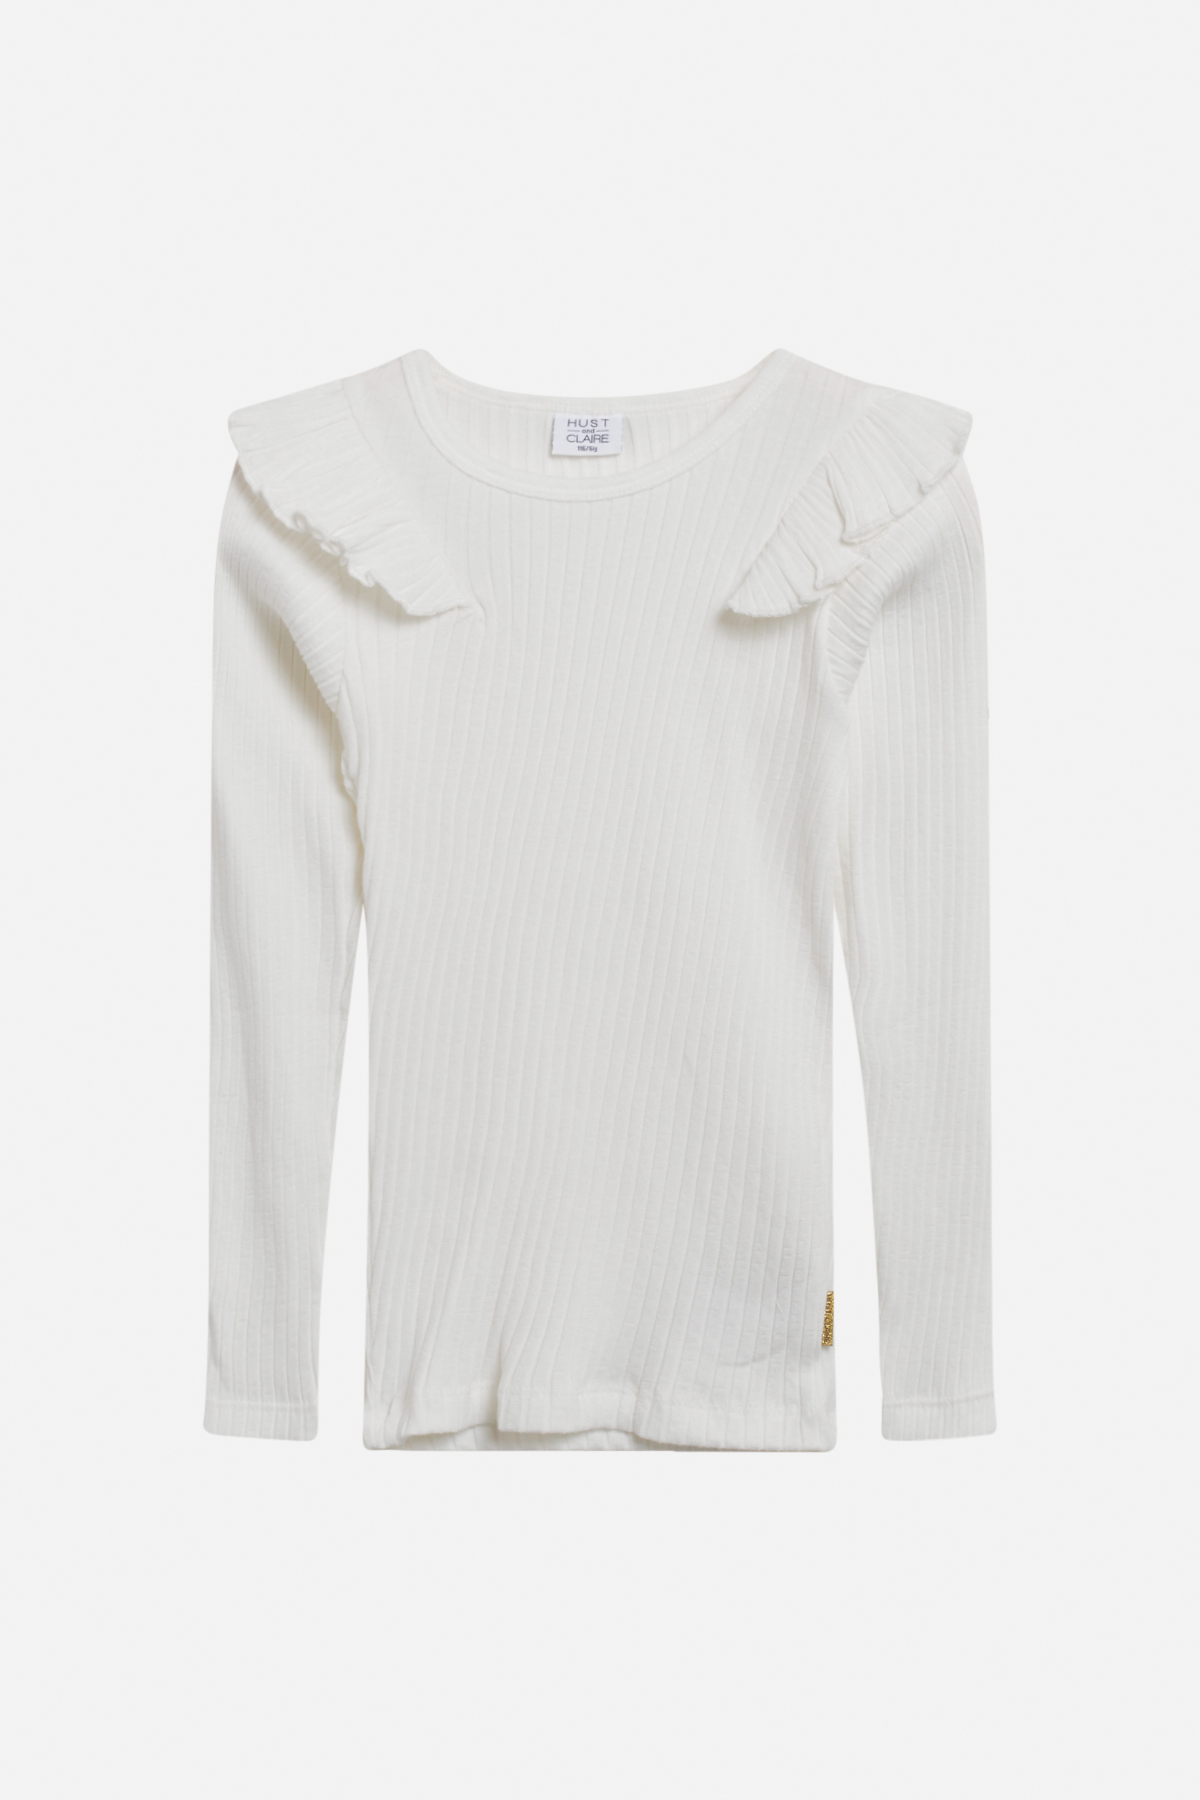 Girl - Adalena - T-shirt L/S